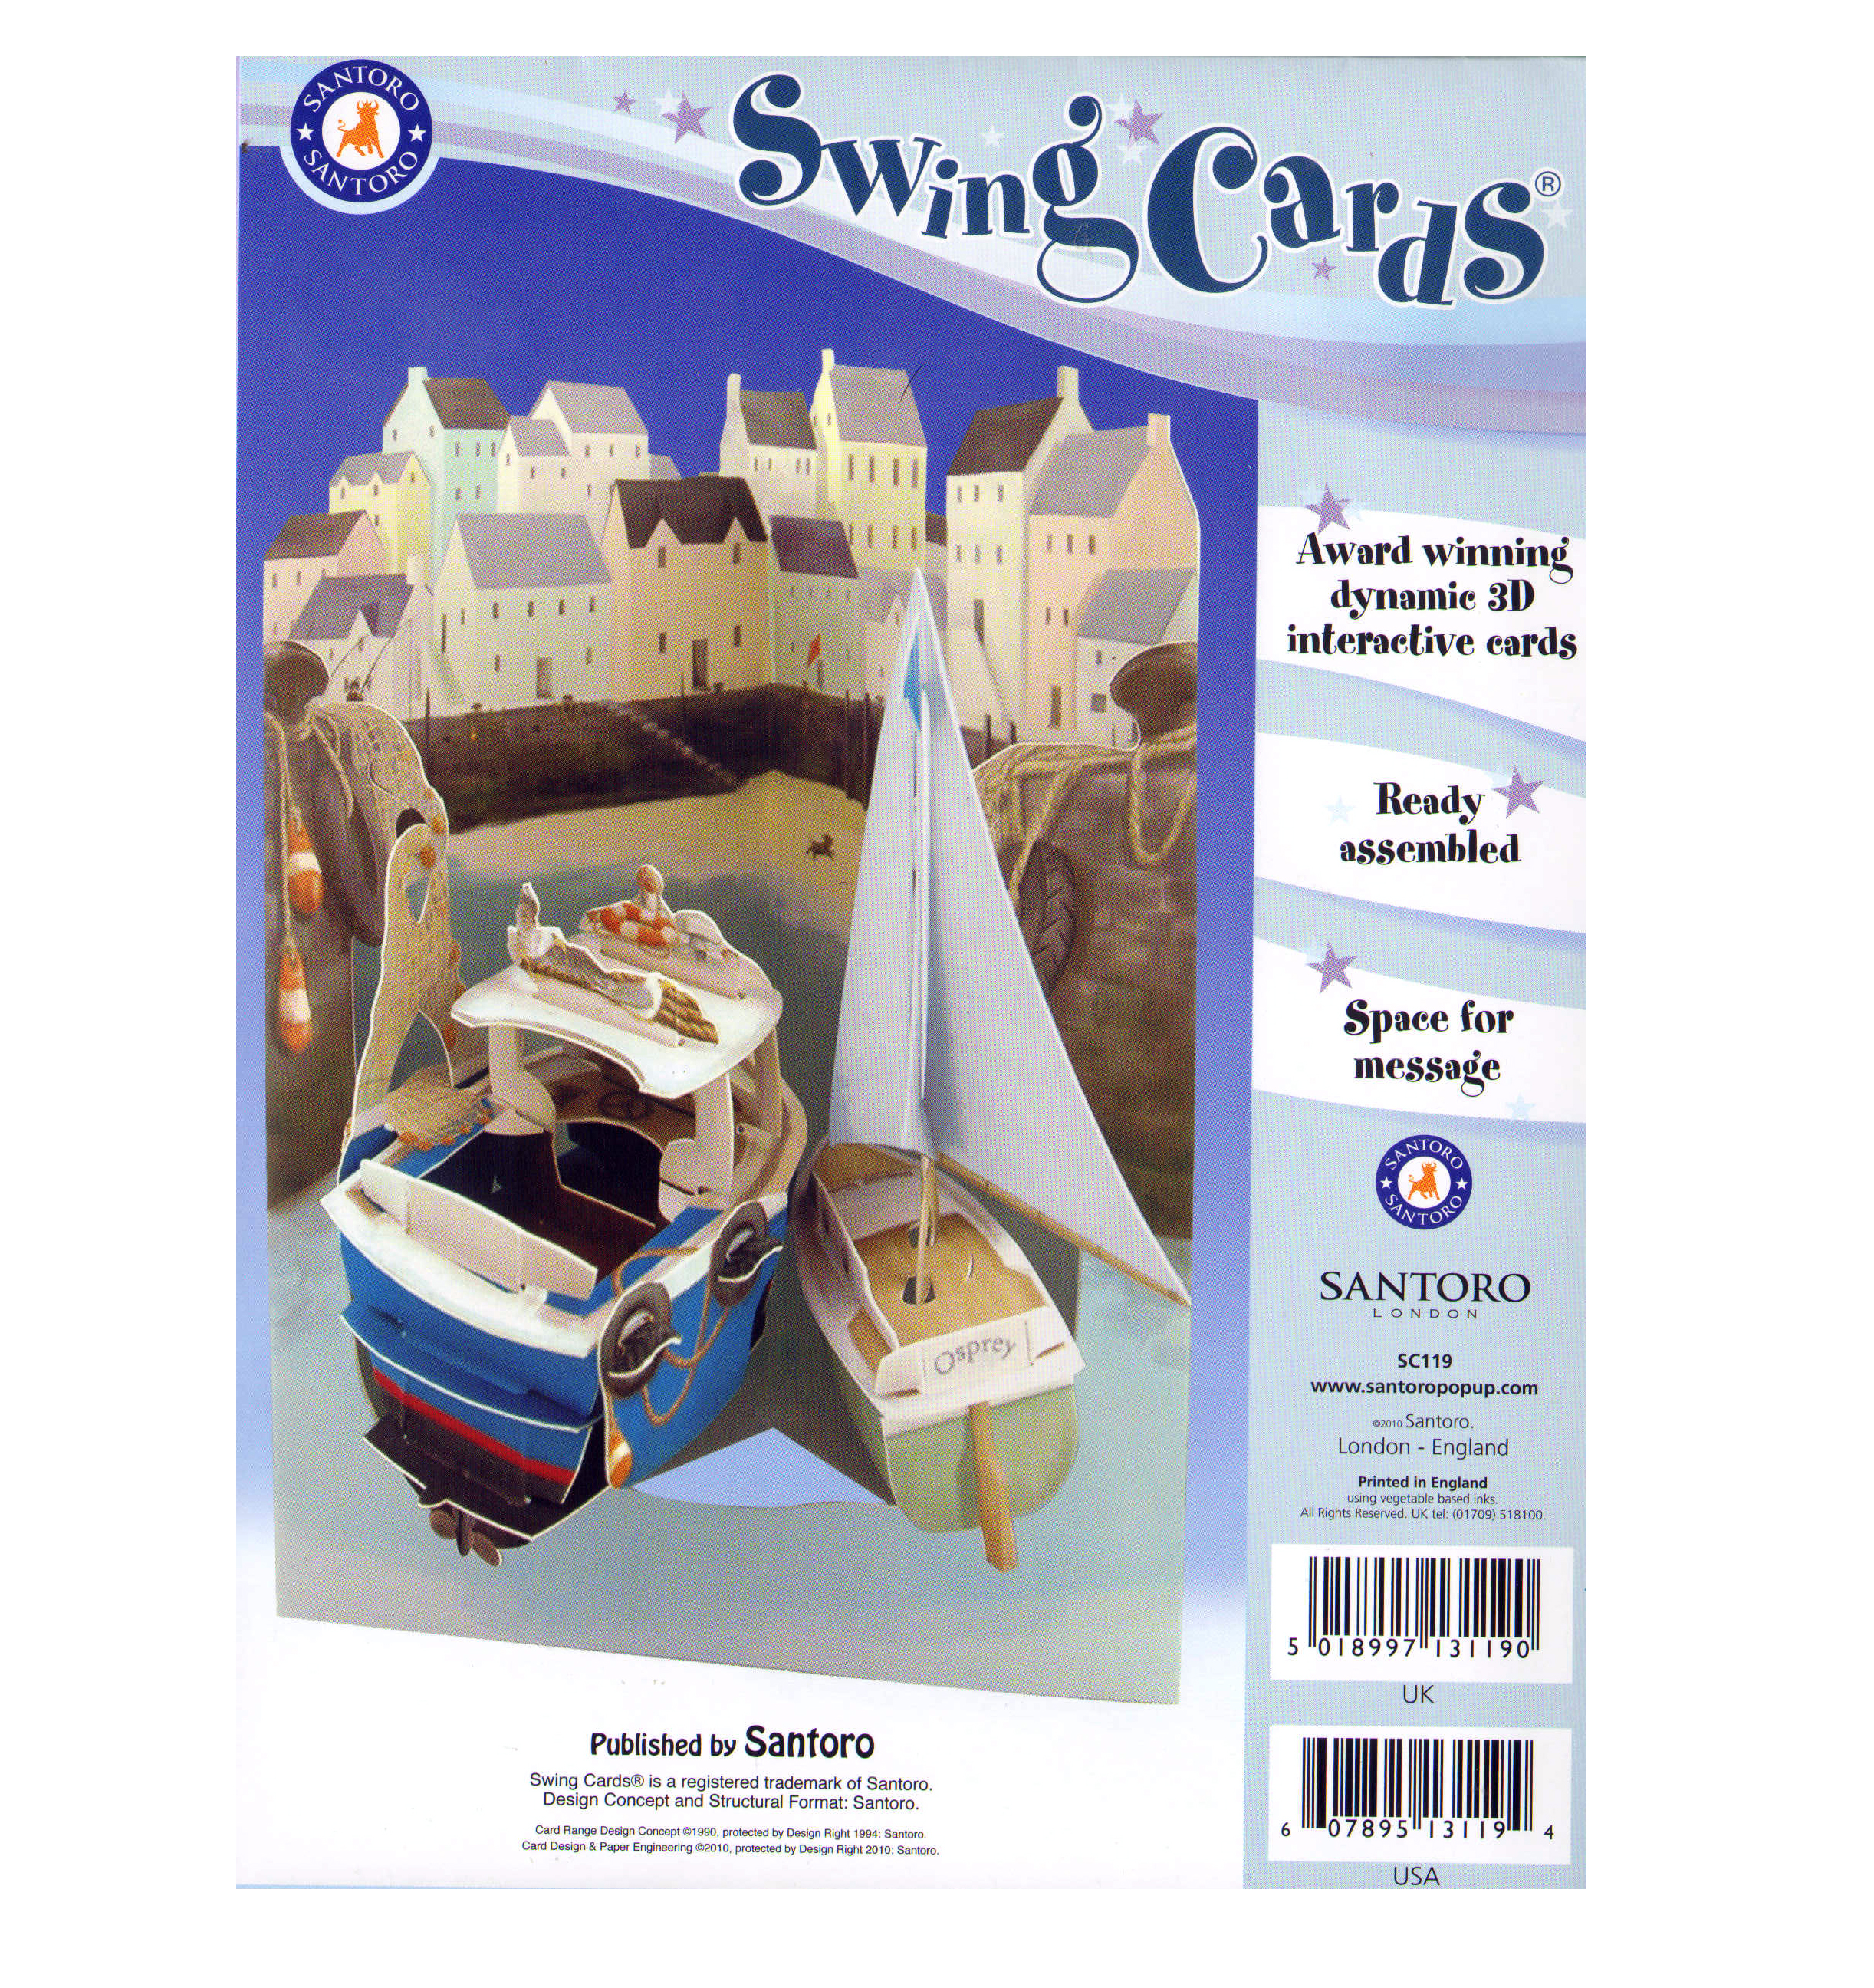 Harbour Swing Card Award Winning Dynamic 3d Interactive Greetings